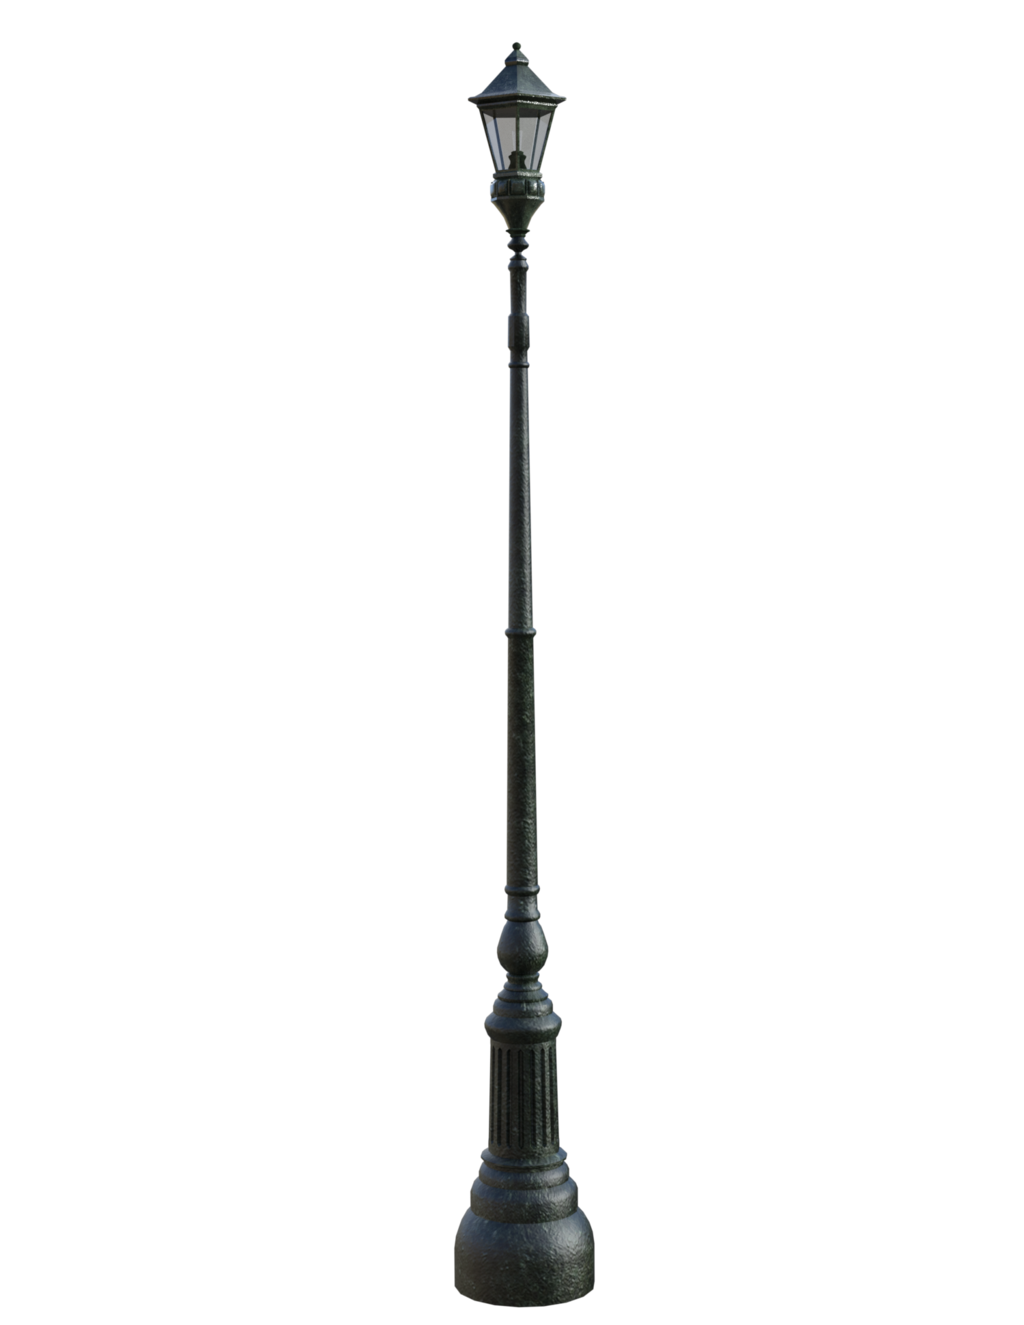 Street lamp png. Light images free download